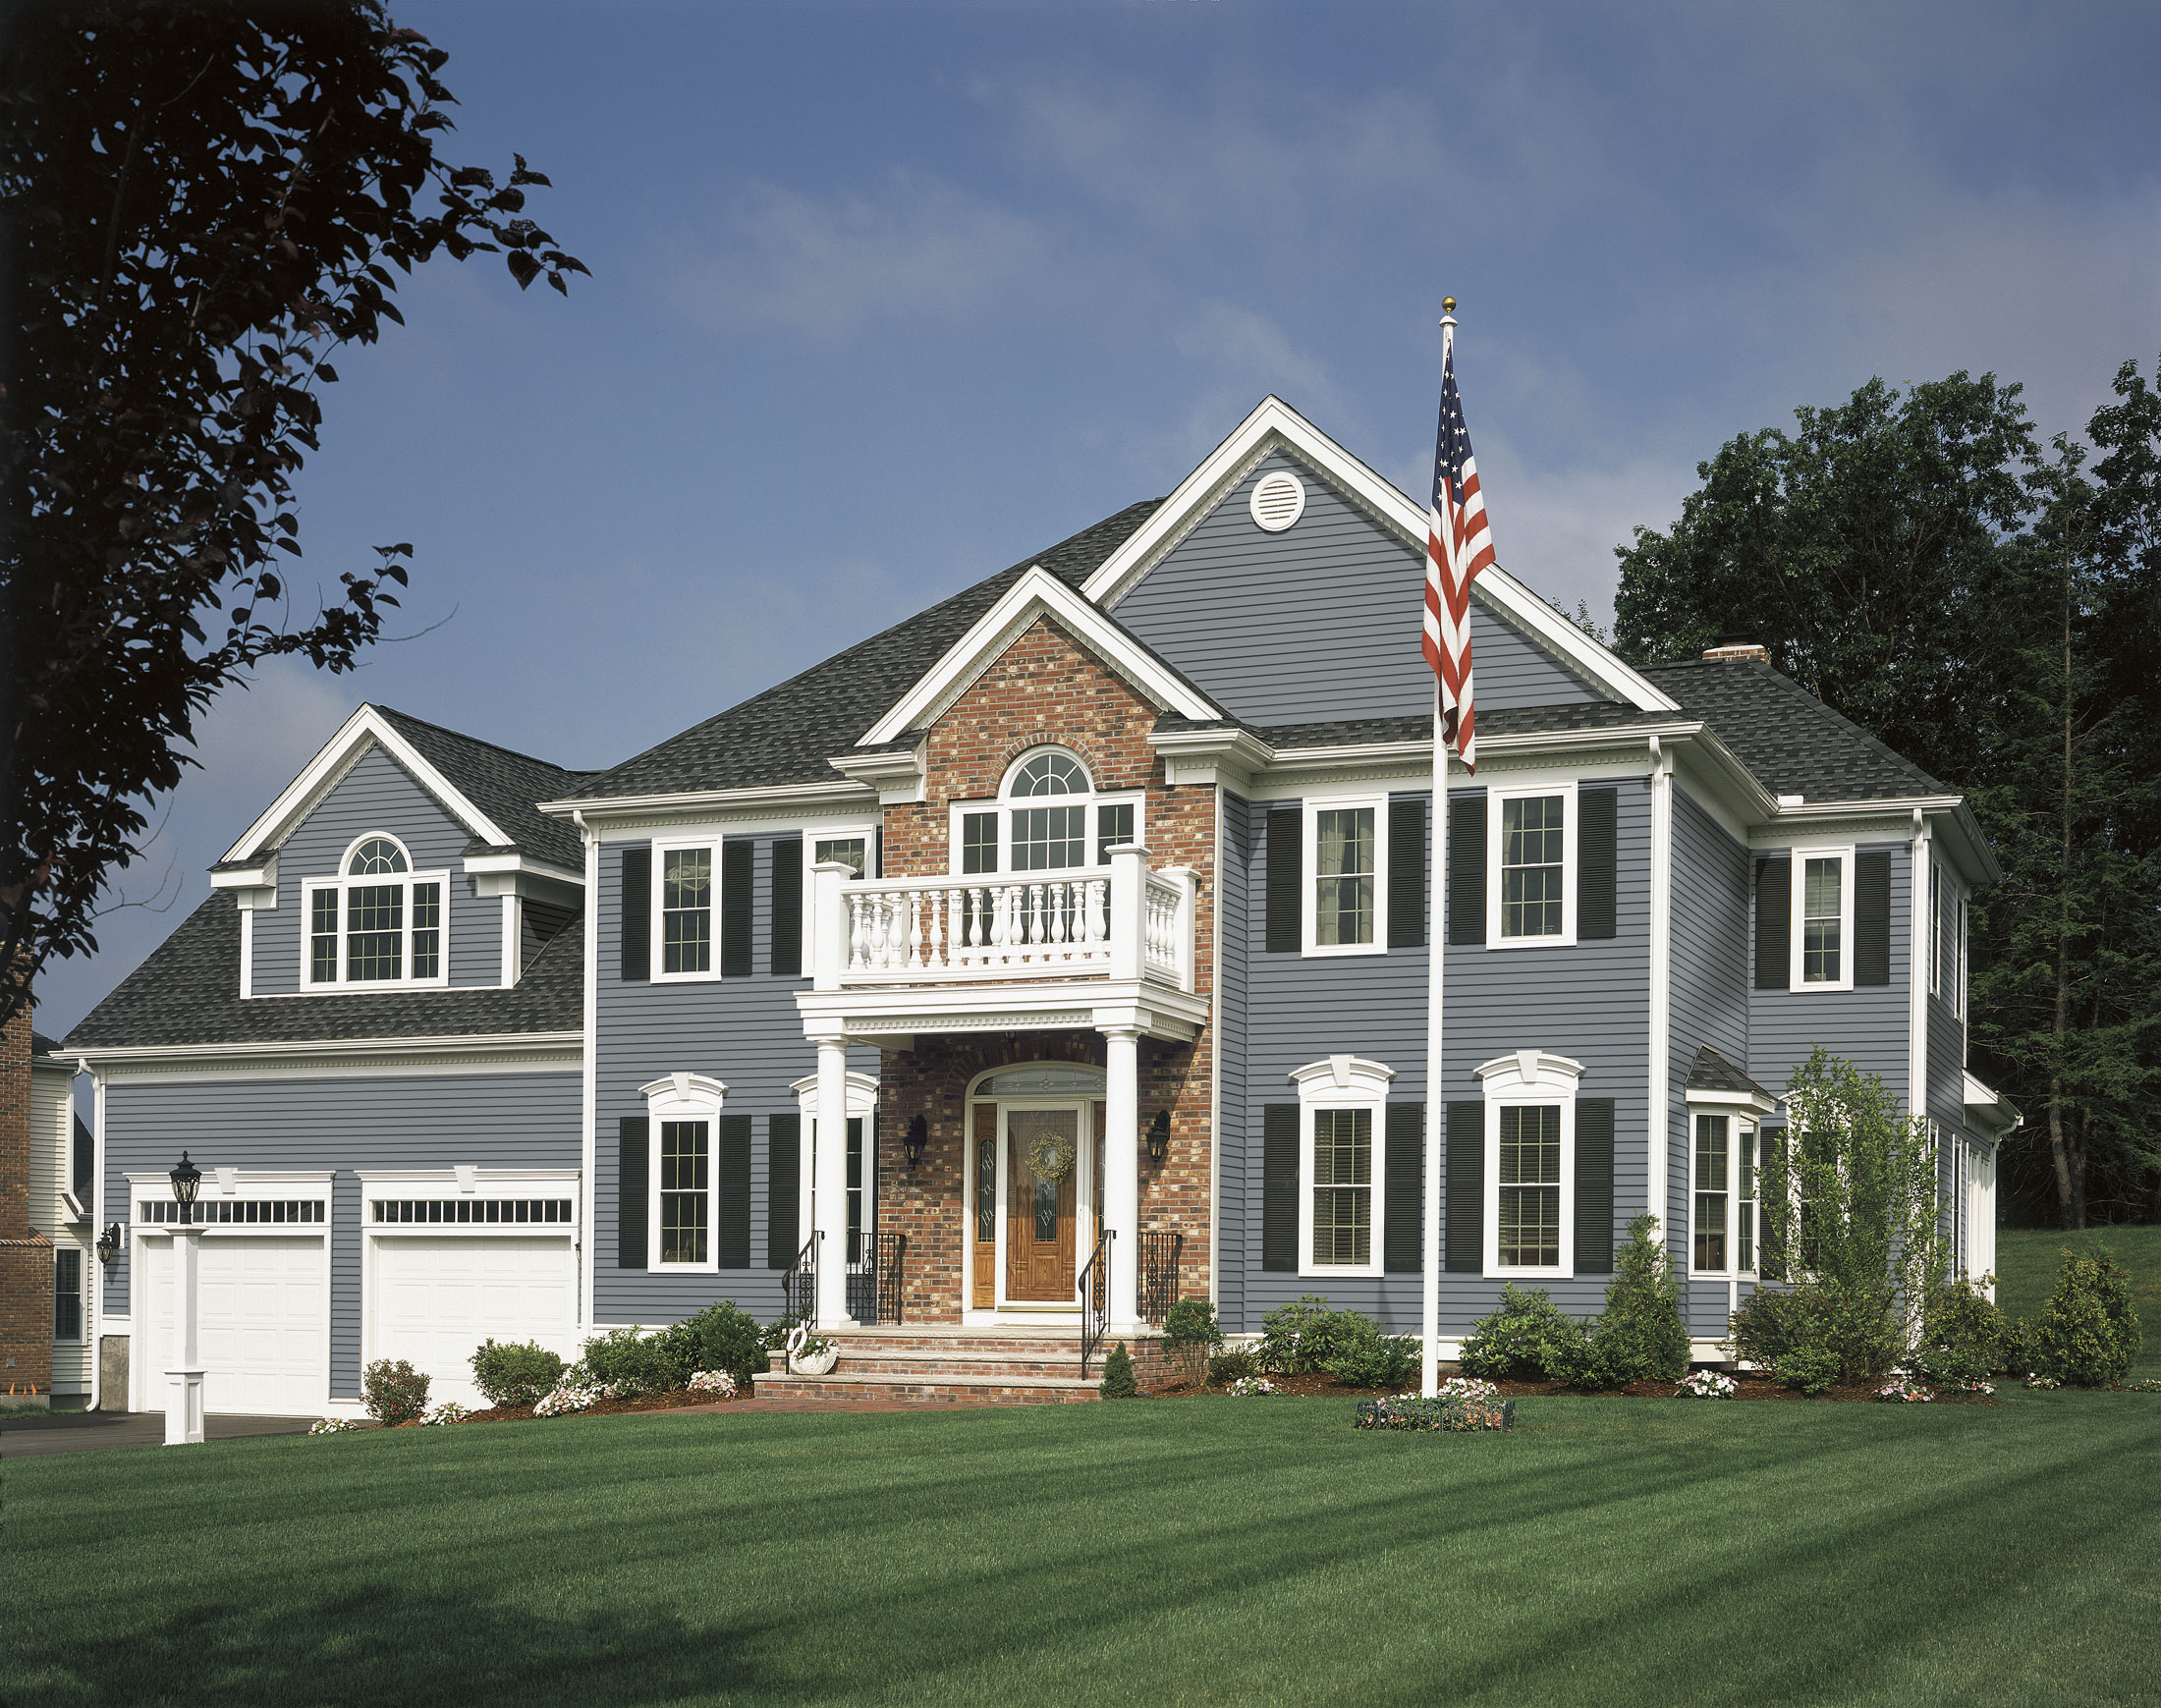 WITH MAINTENANCE FREE VINYL SIDING!!! WE CAN SUPPLY YOU WITH ADDRESSES IN